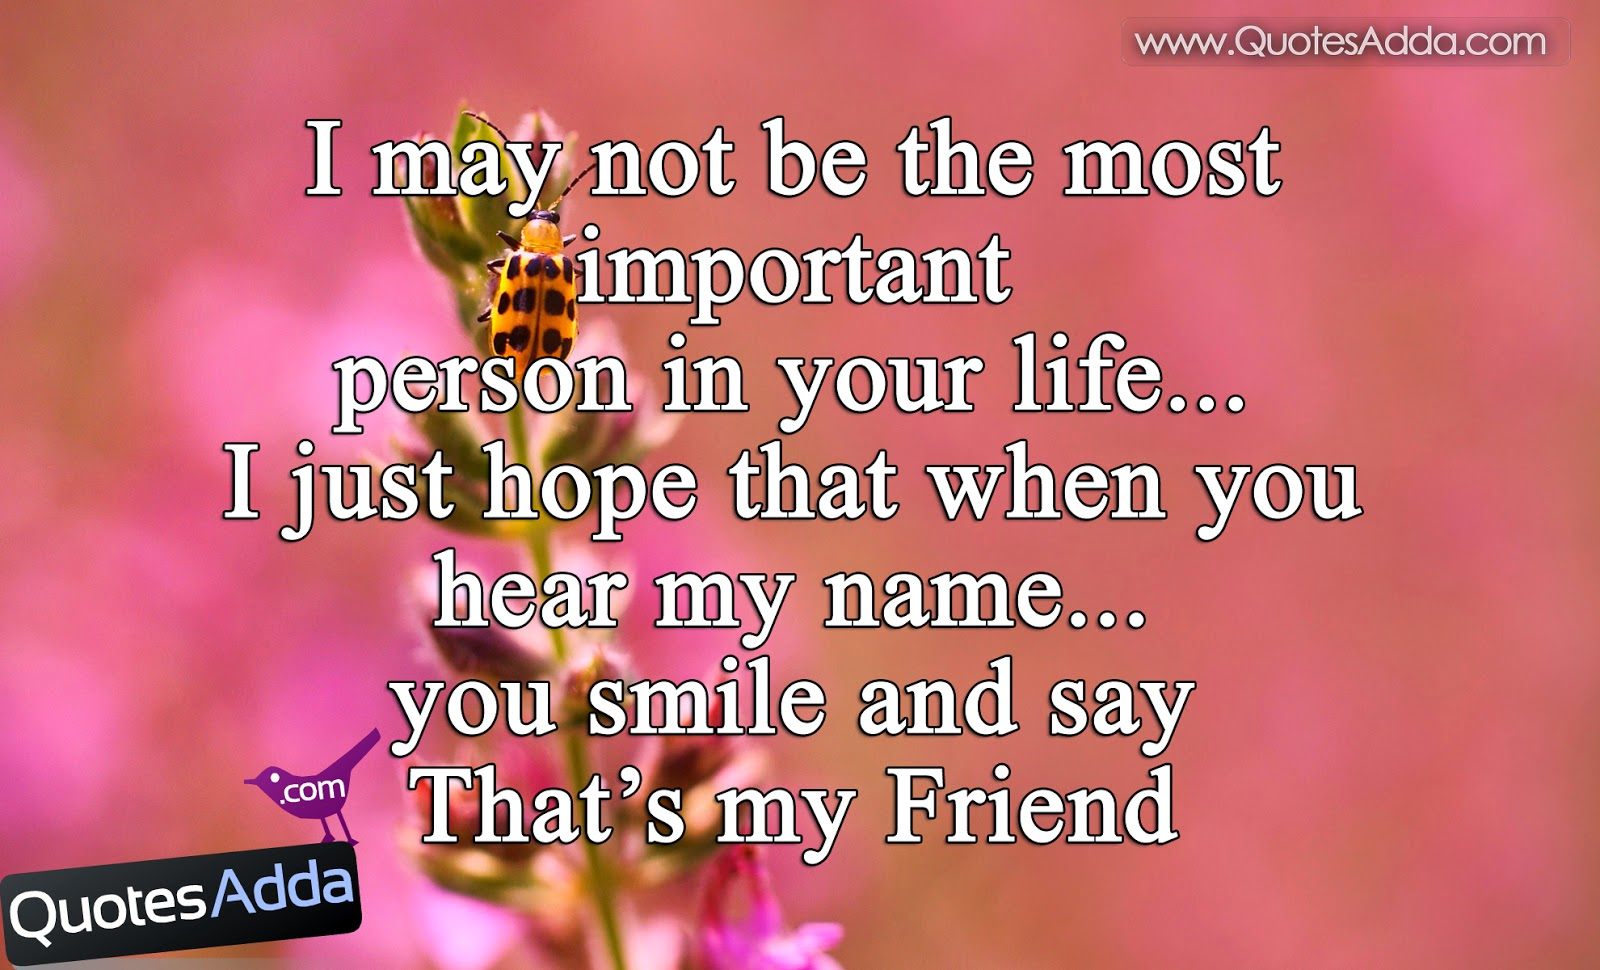 Quotes about All my friends (354 quotes)